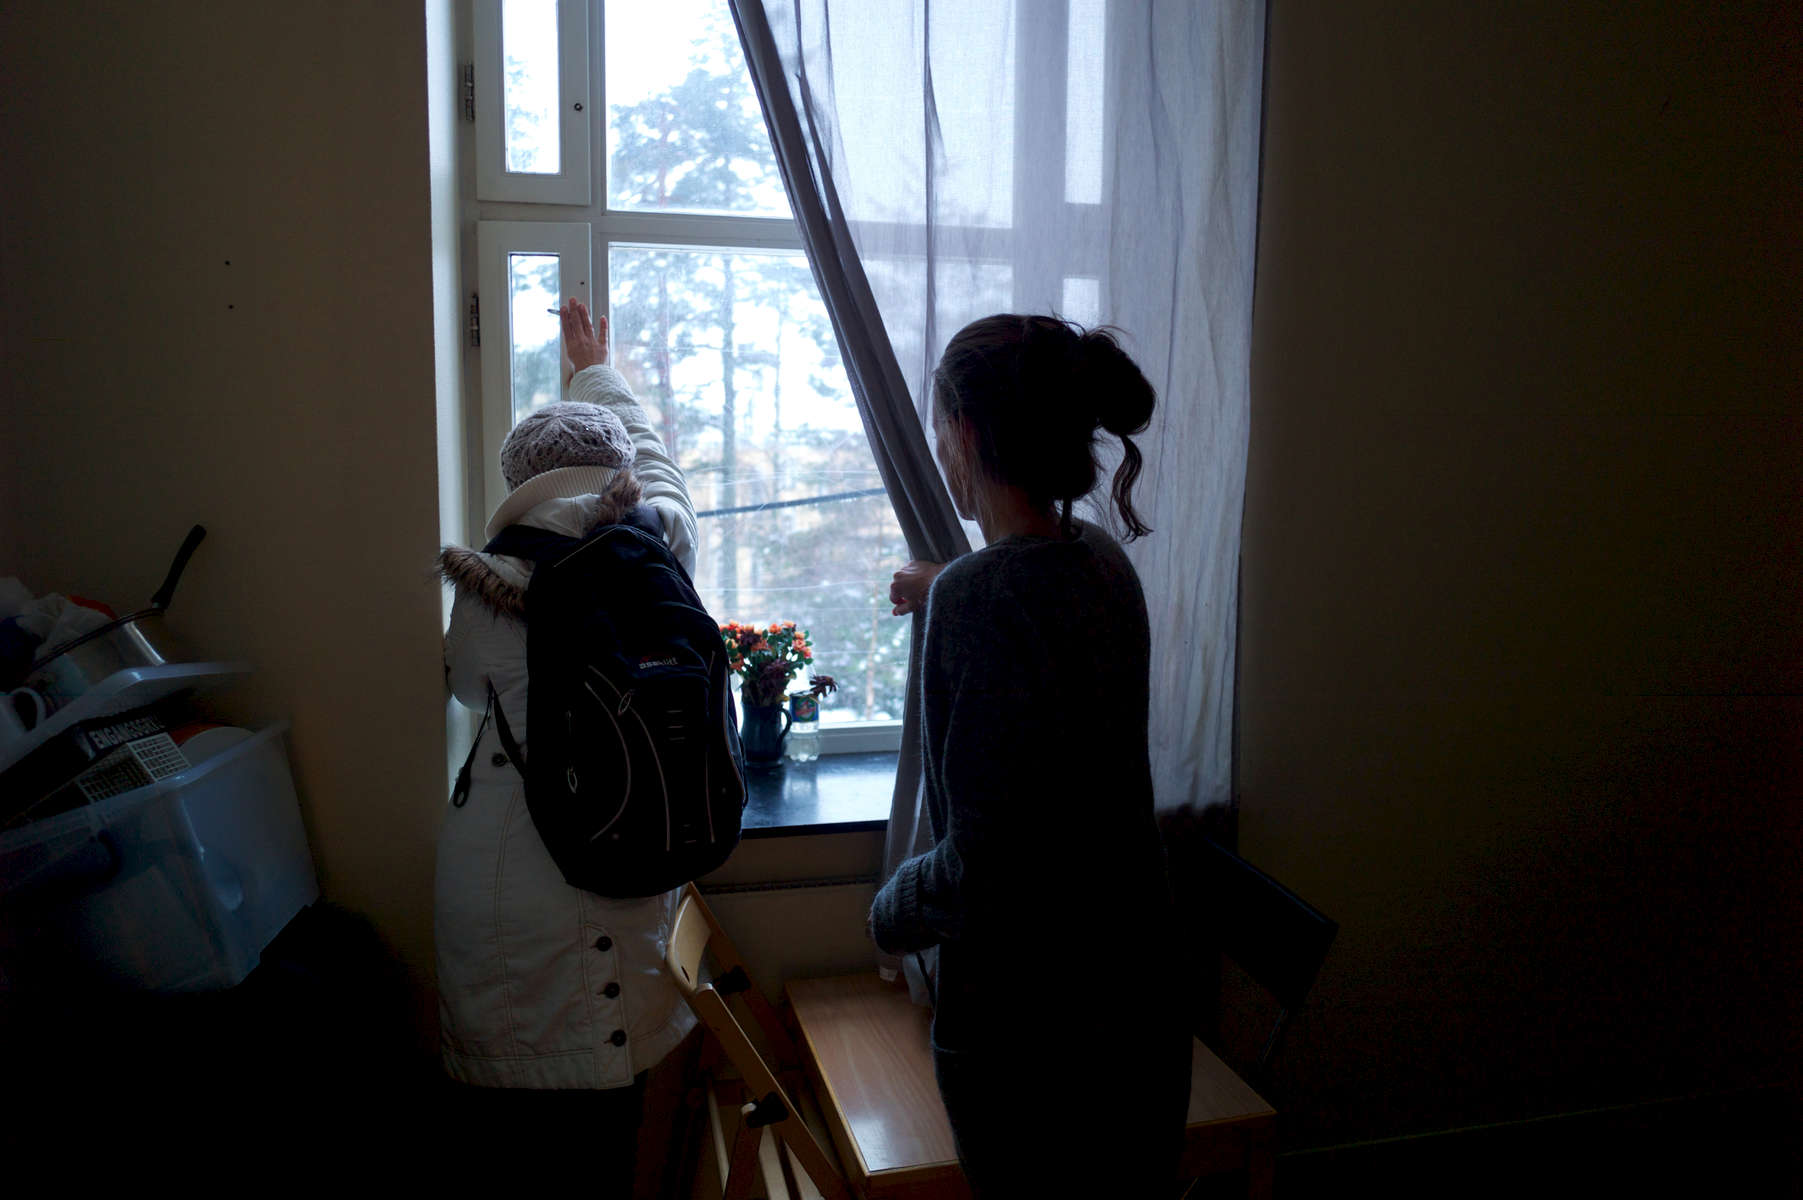 A rejected asylum seeker looks out the window of her darkened room with a refugee camp worker standing nearby.